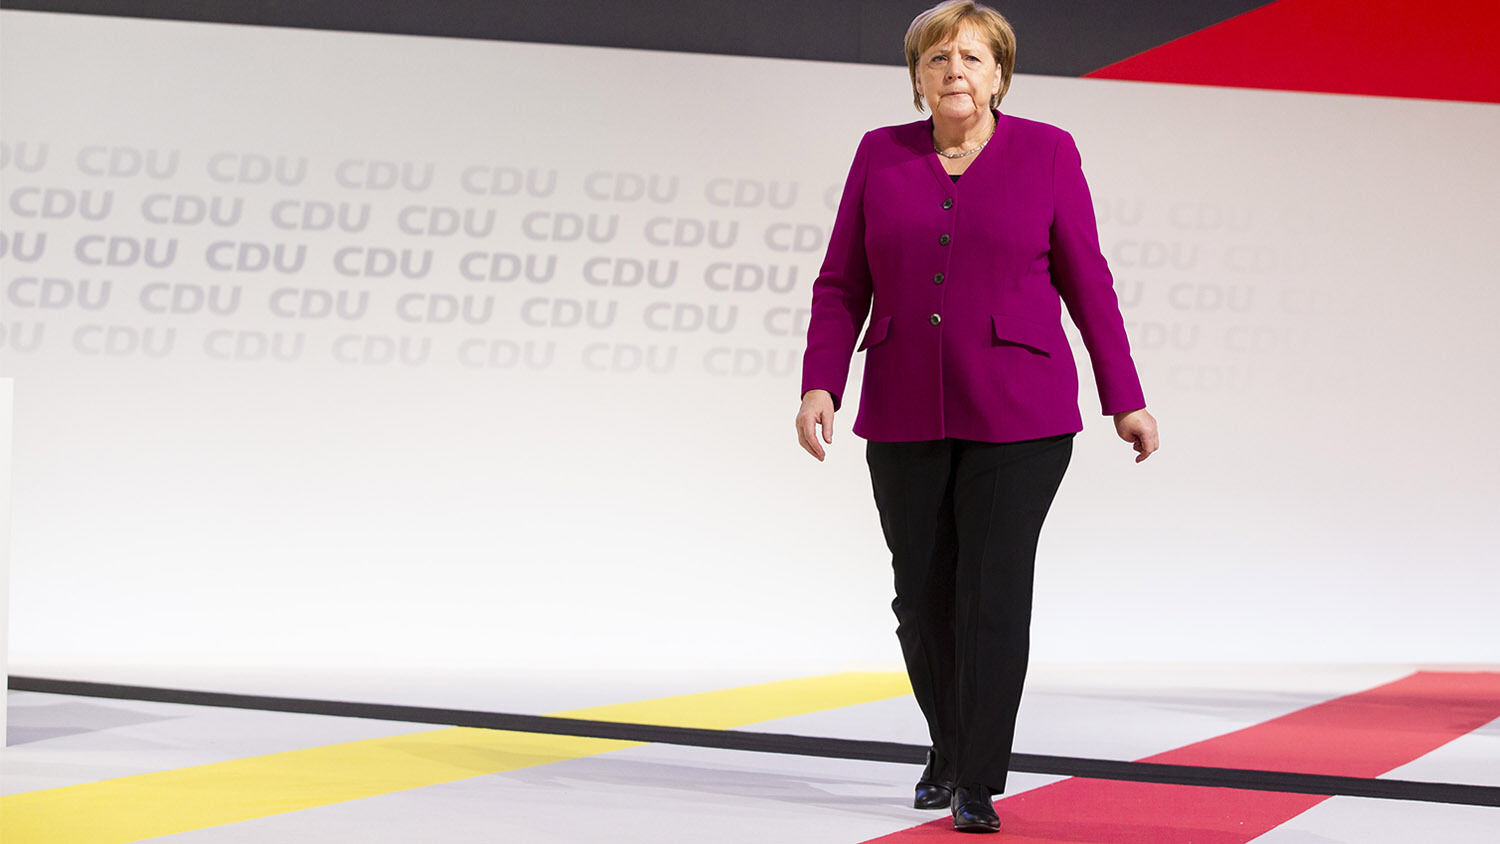 Germany Groans for a Savior German Chancellor Angela Merkel Emmanuele Contini  Nur